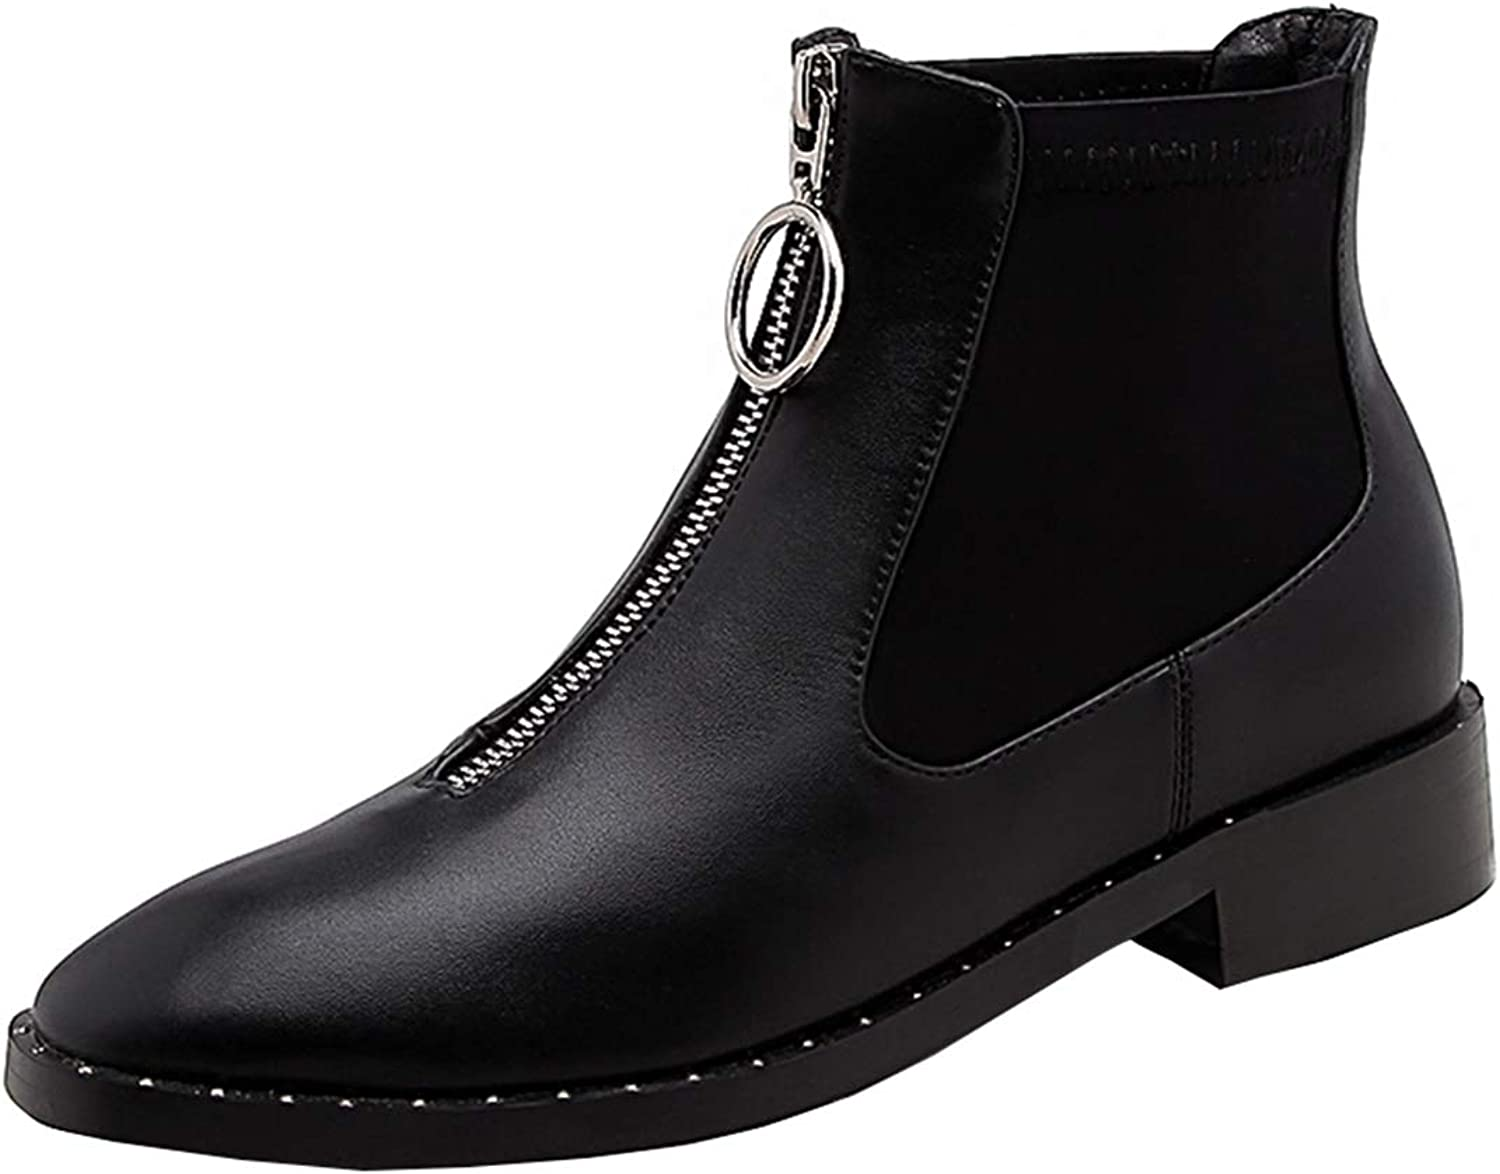 Vitalo Womens Flat Front Zip Ankle Boots Low Heel Square Toe Booties